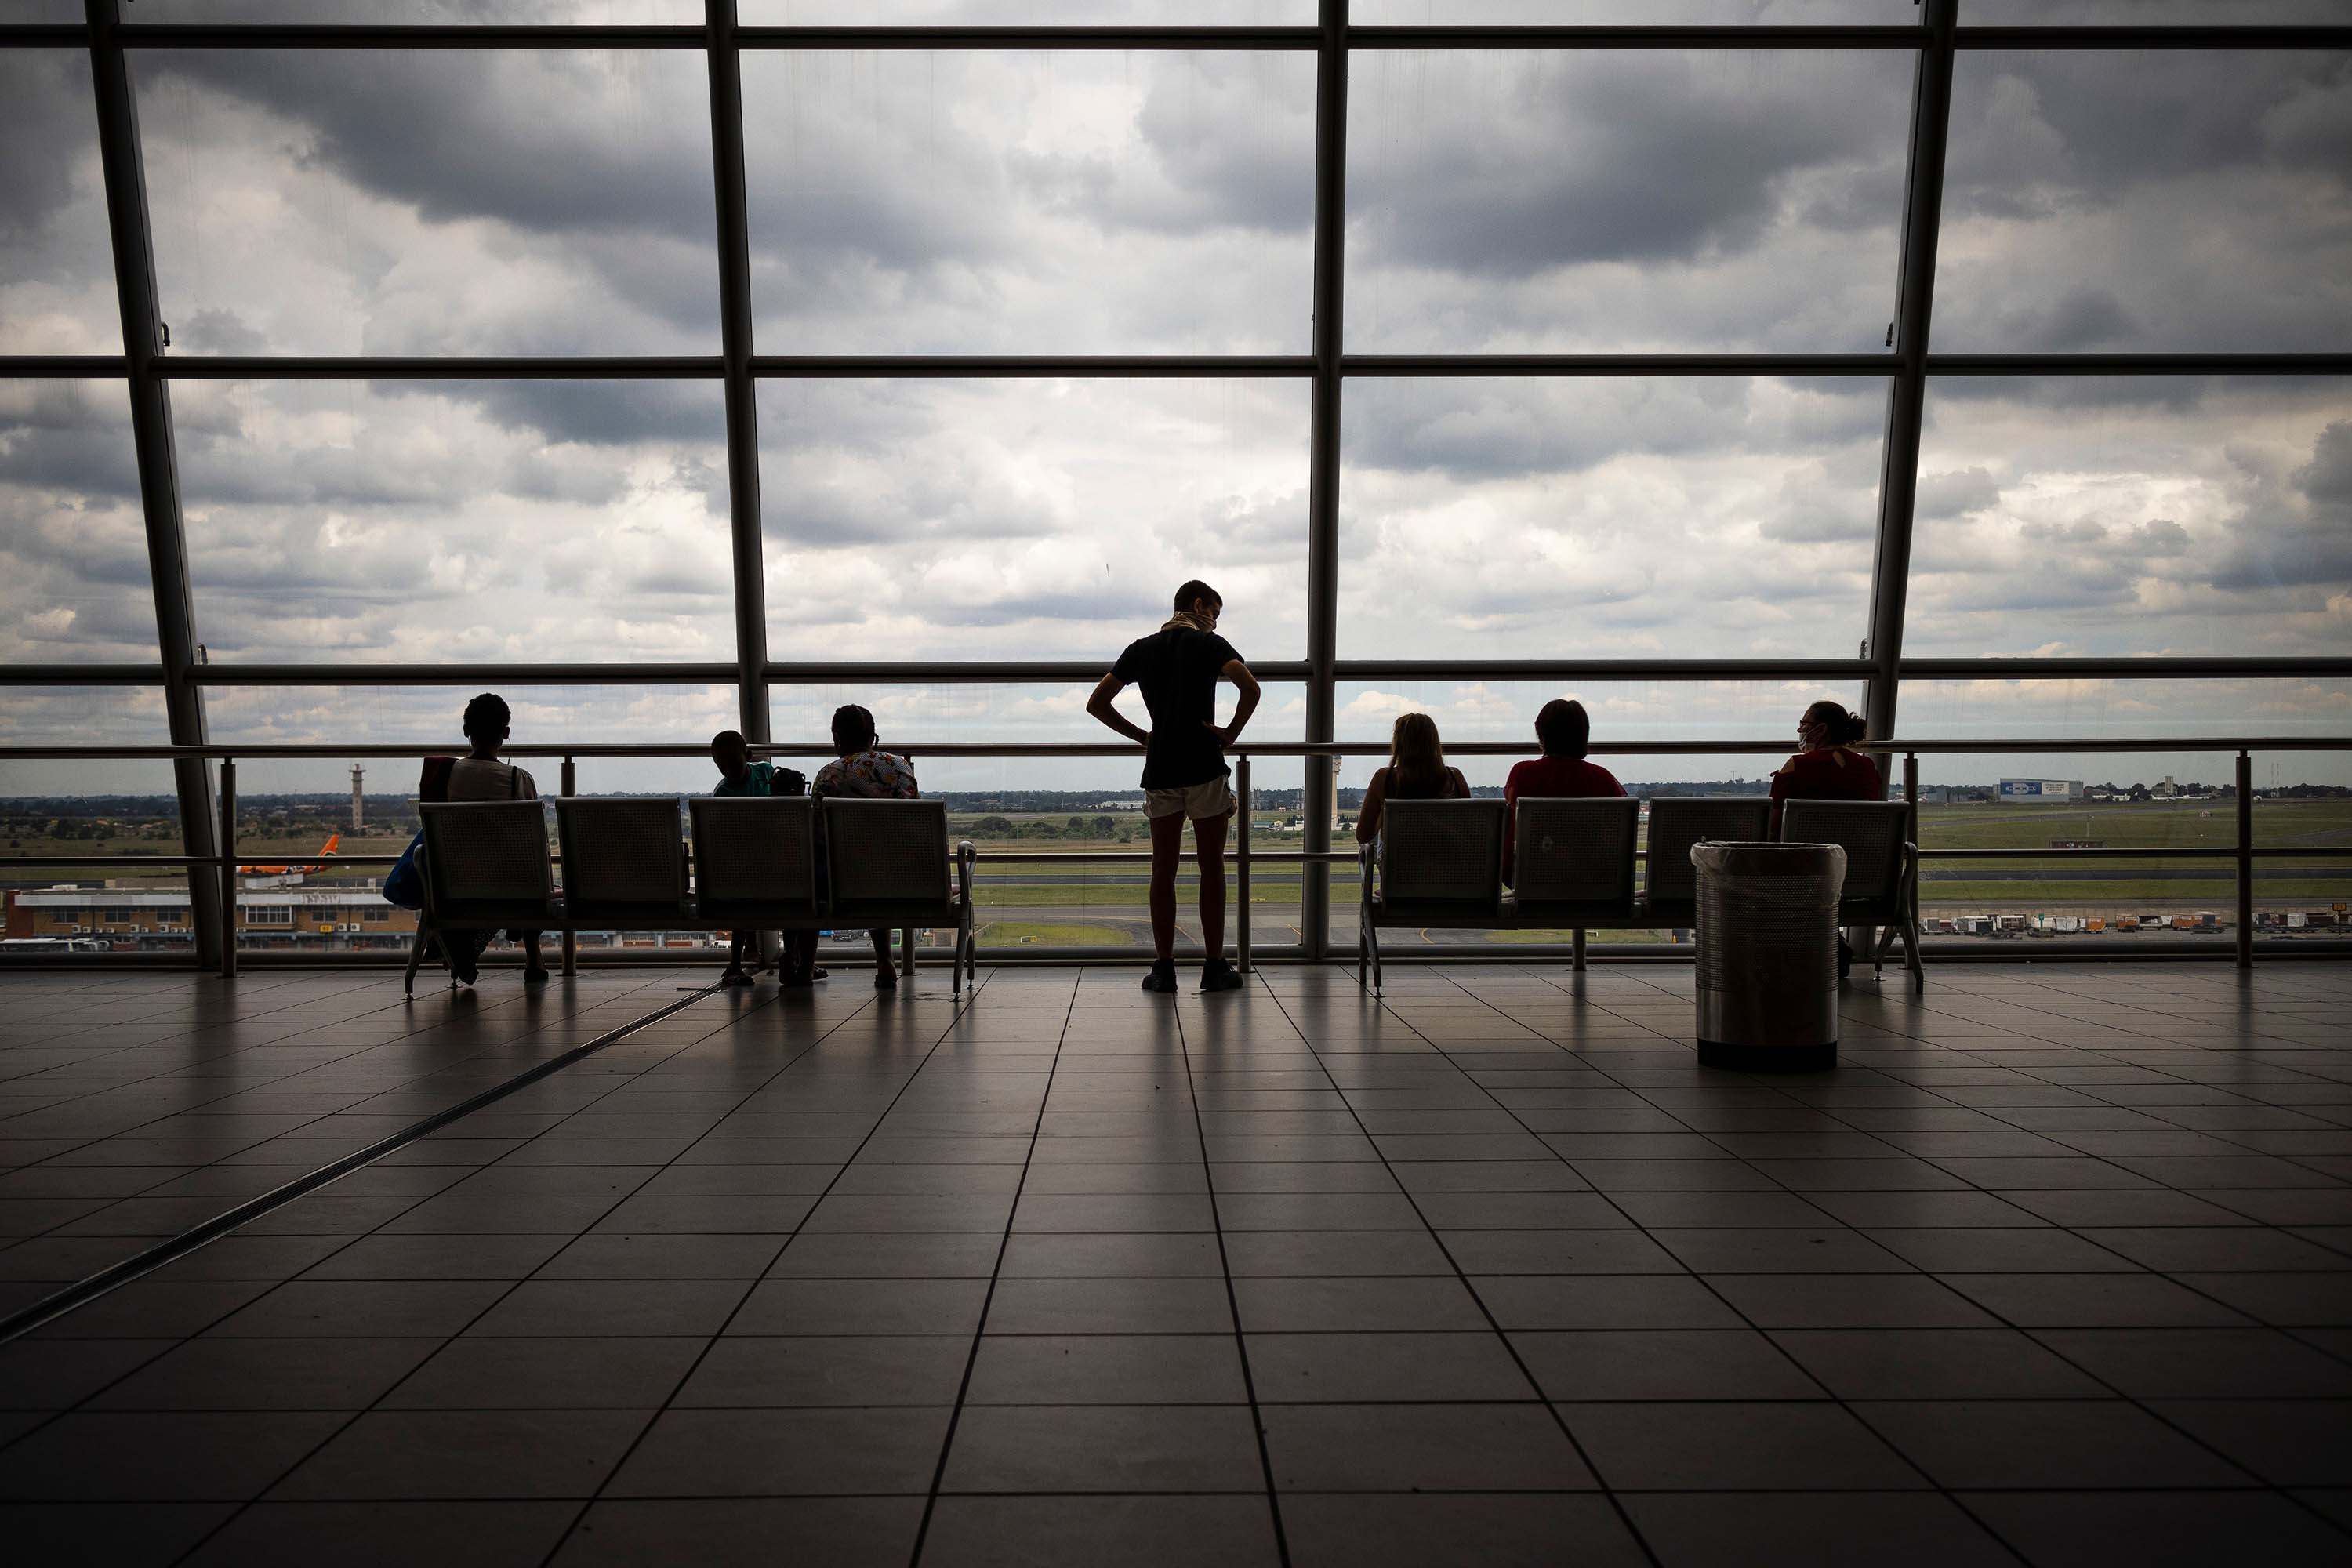 Passengers view planes from the observation deck at the OR Thambo International airport in Johannesburg, South Africa, on December 21, 2020.